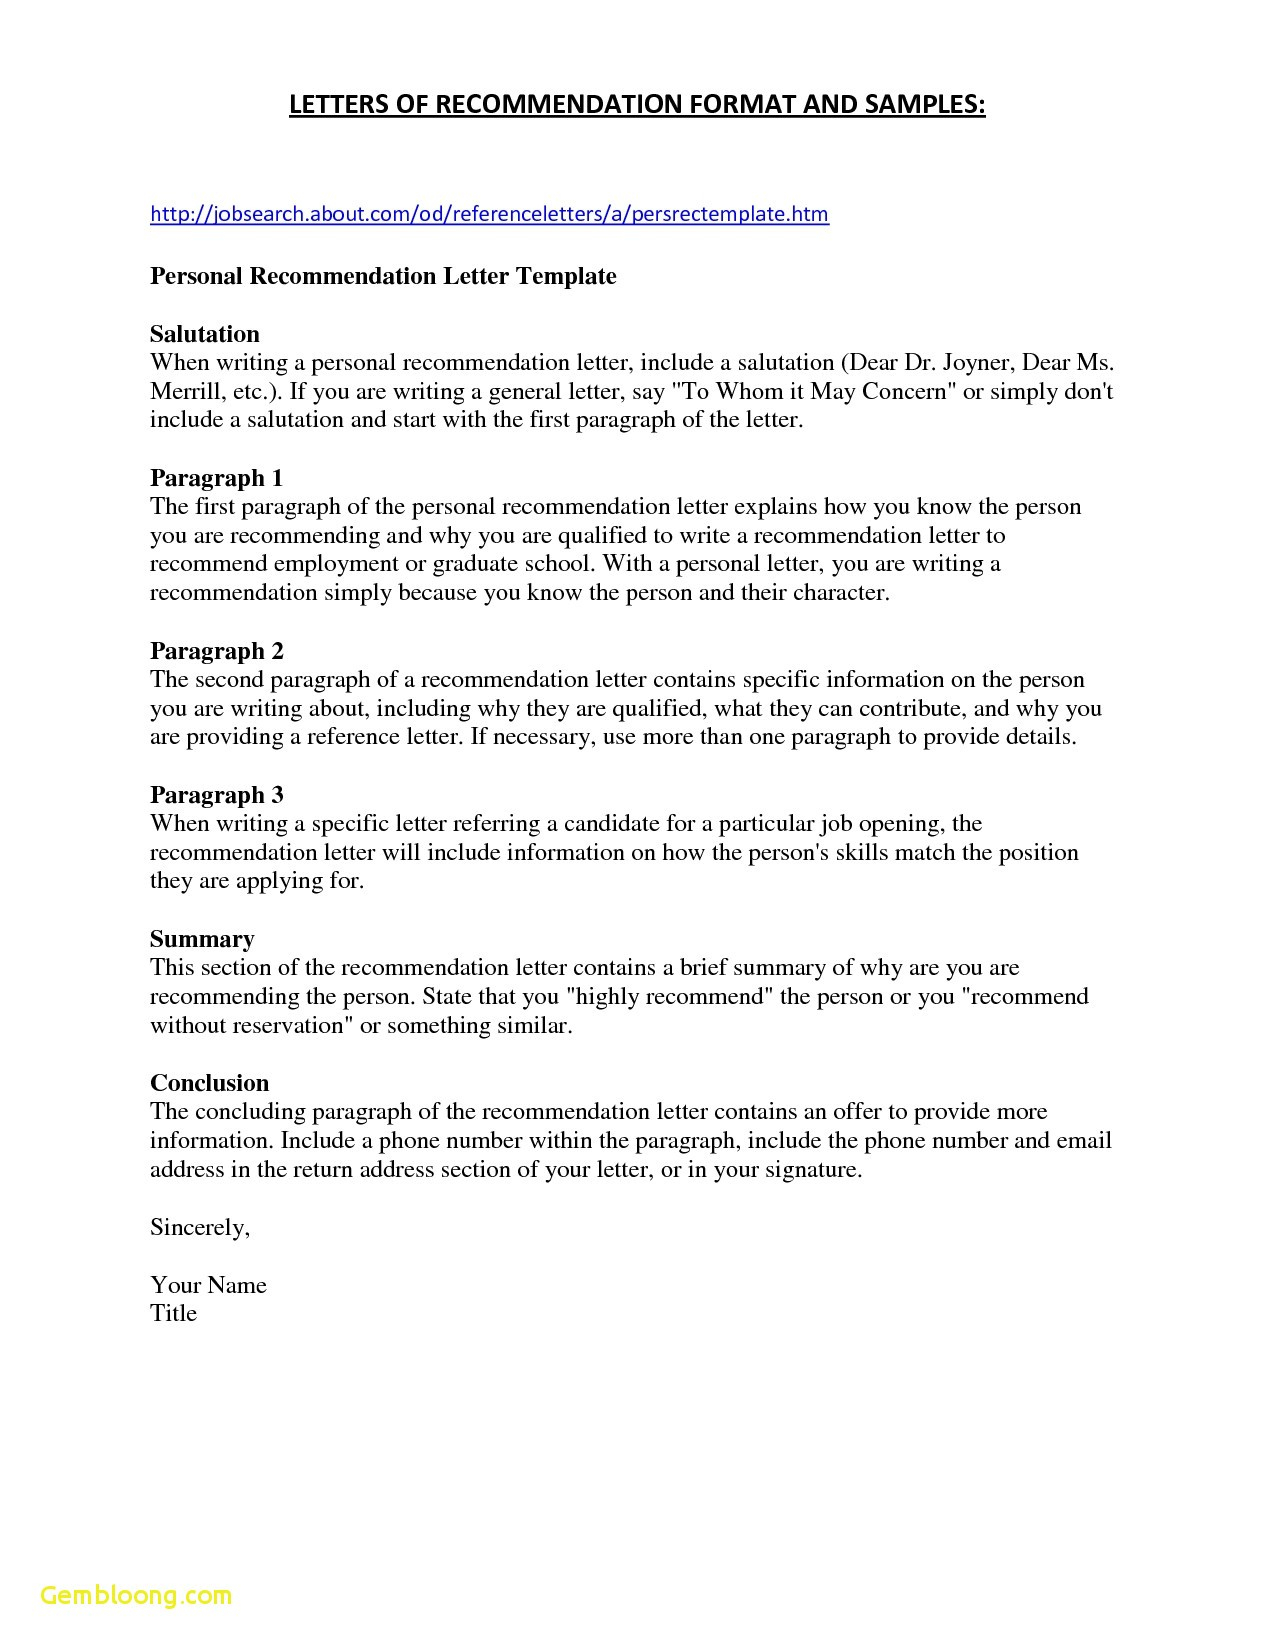 downloadable letter of recommendation template Collection-Letter Re mendation Template for College Admission New College Admission Resume Sample Download Sample Reference Letter 8-m